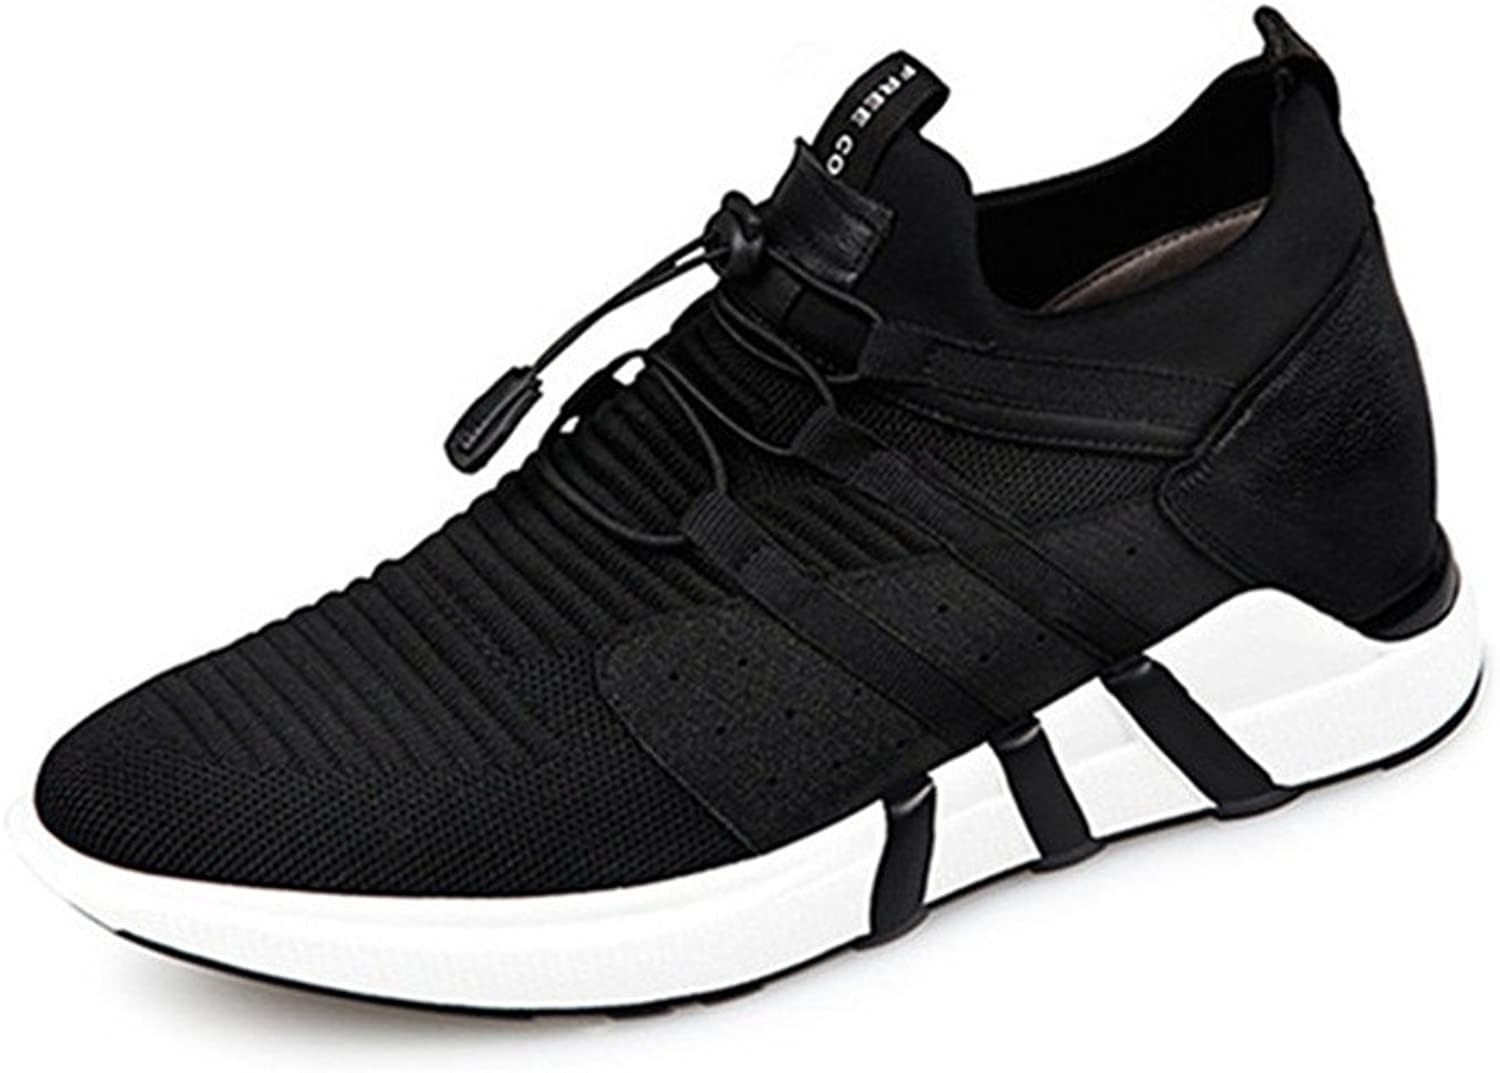 GOG Men's Height Increasing Elevator shoes Light Weight Casual Sport shoes 2.36 inches Taller